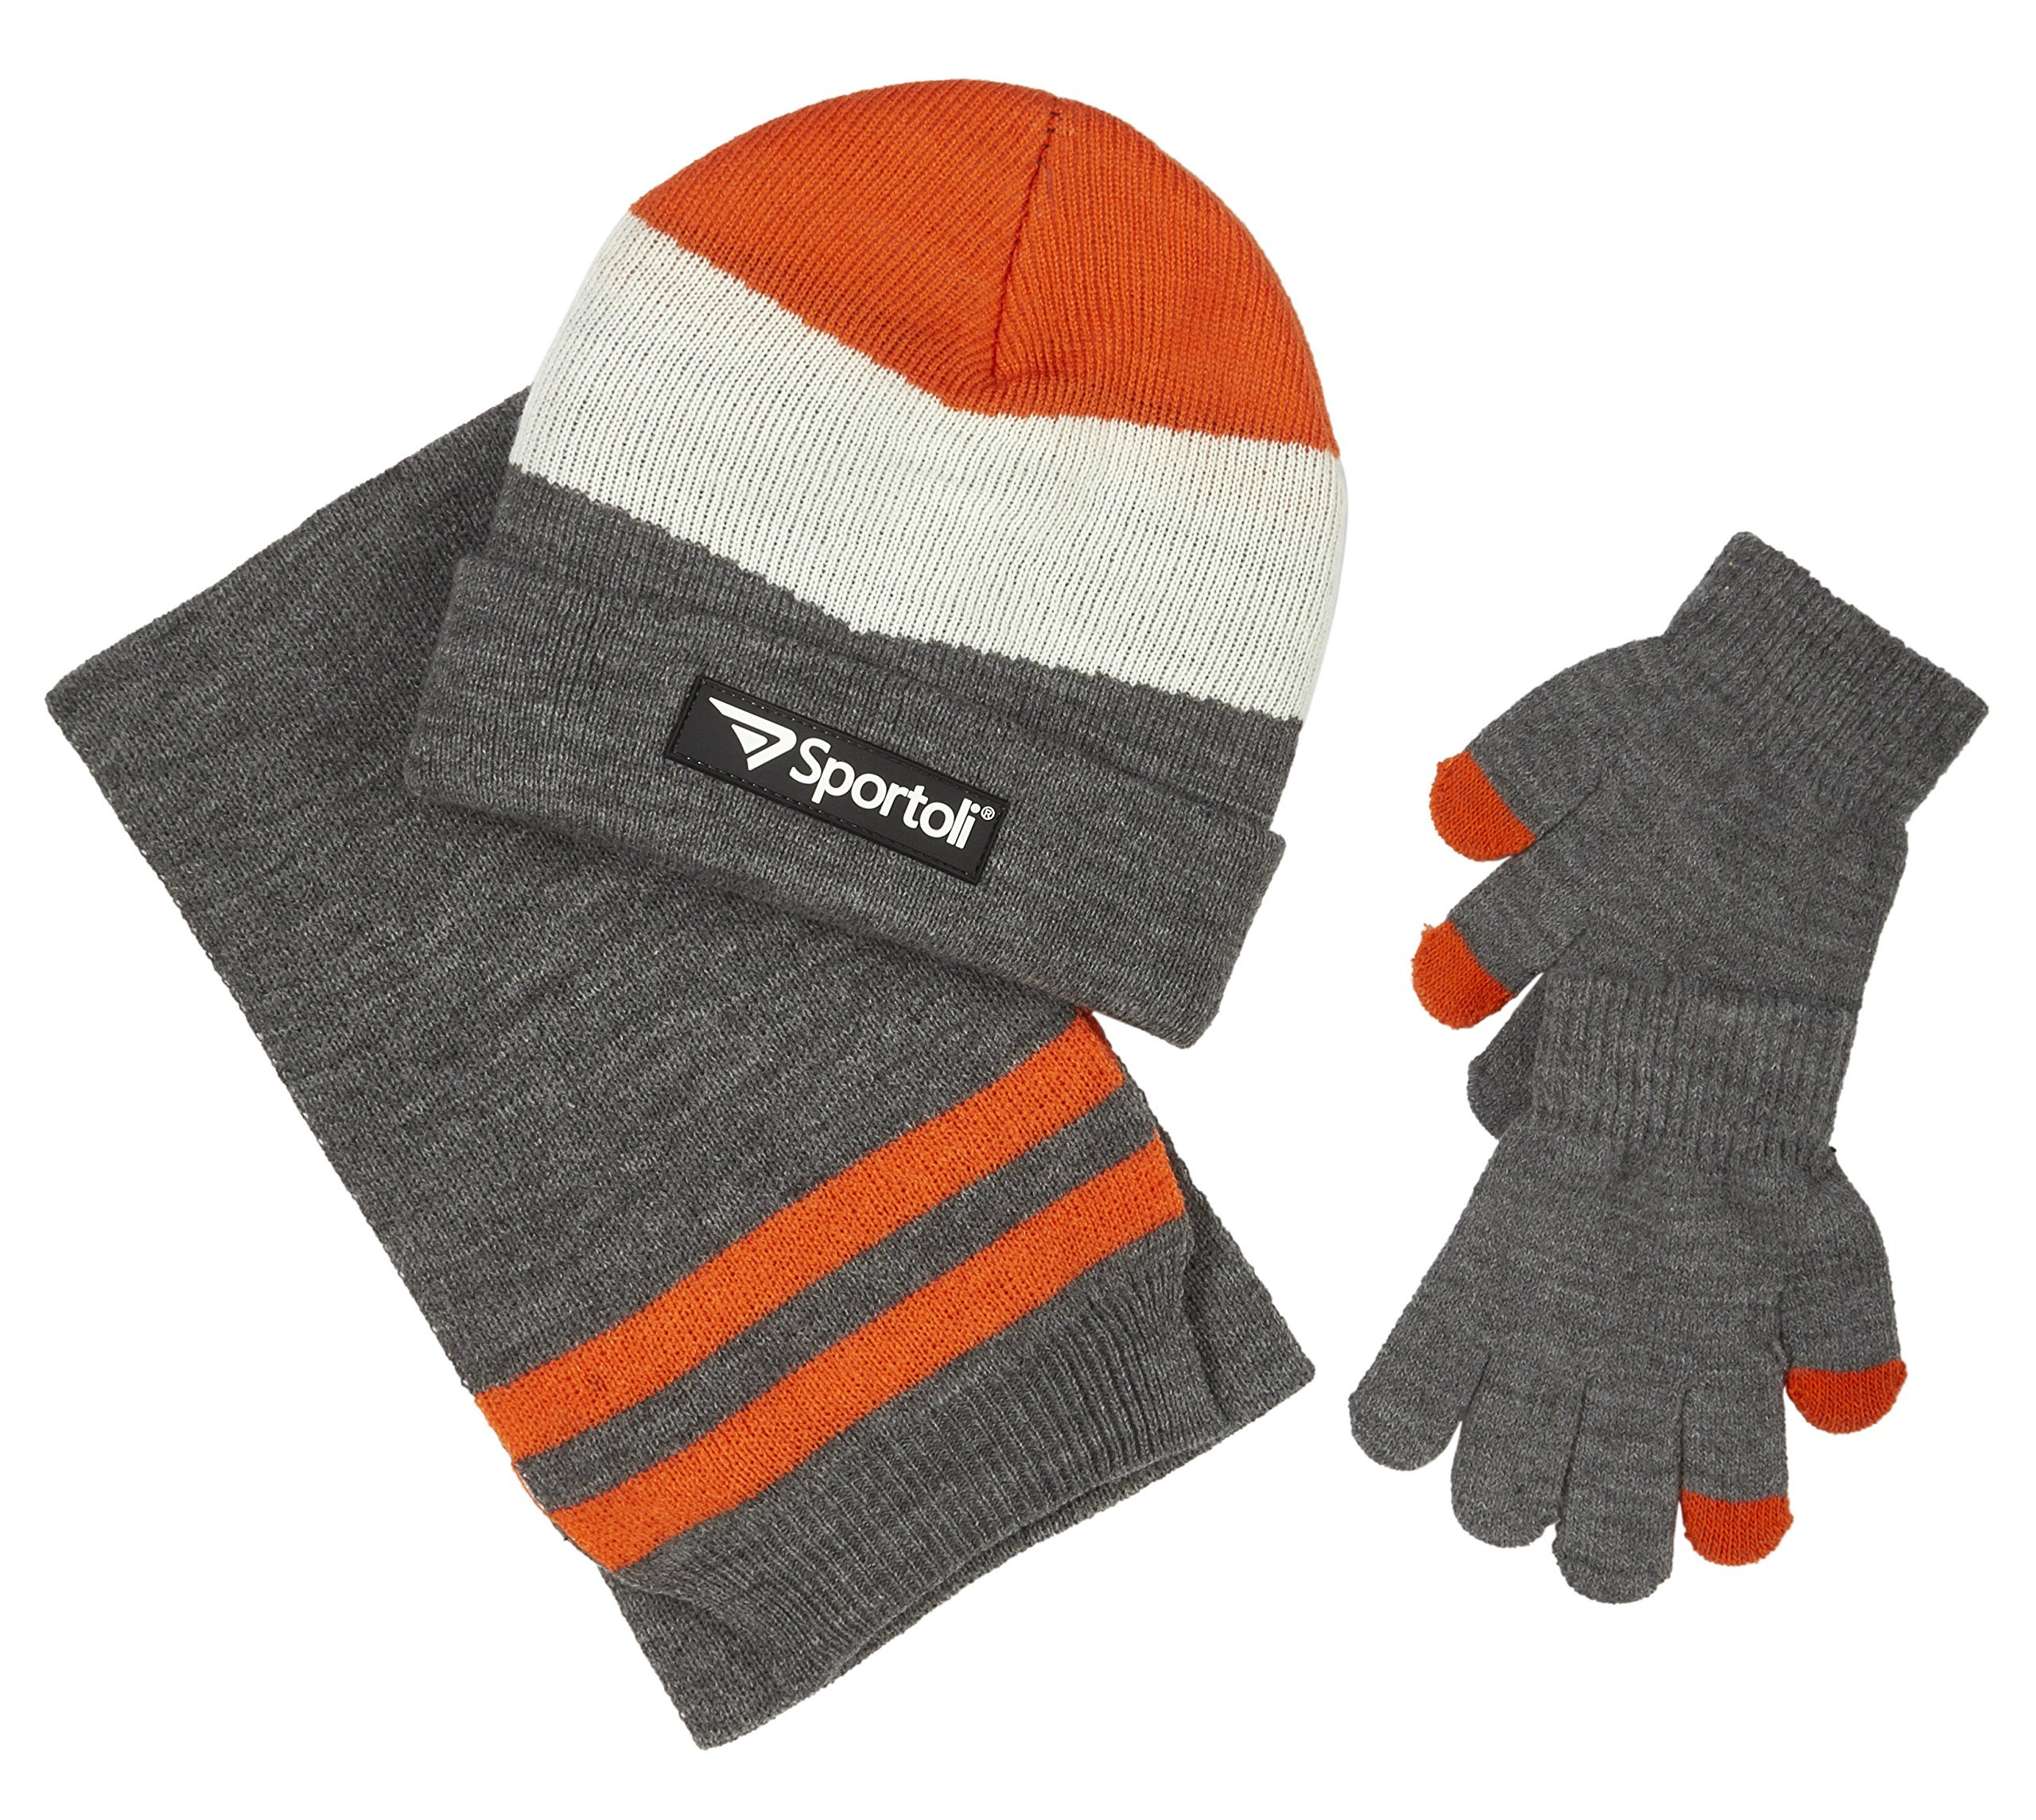 Sportoli Boys' Kids Knit Cold Weather Accessory Set Warm Hat, Scarf and Gloves (Heather Grey Chevron),Boys One Size / 8-20